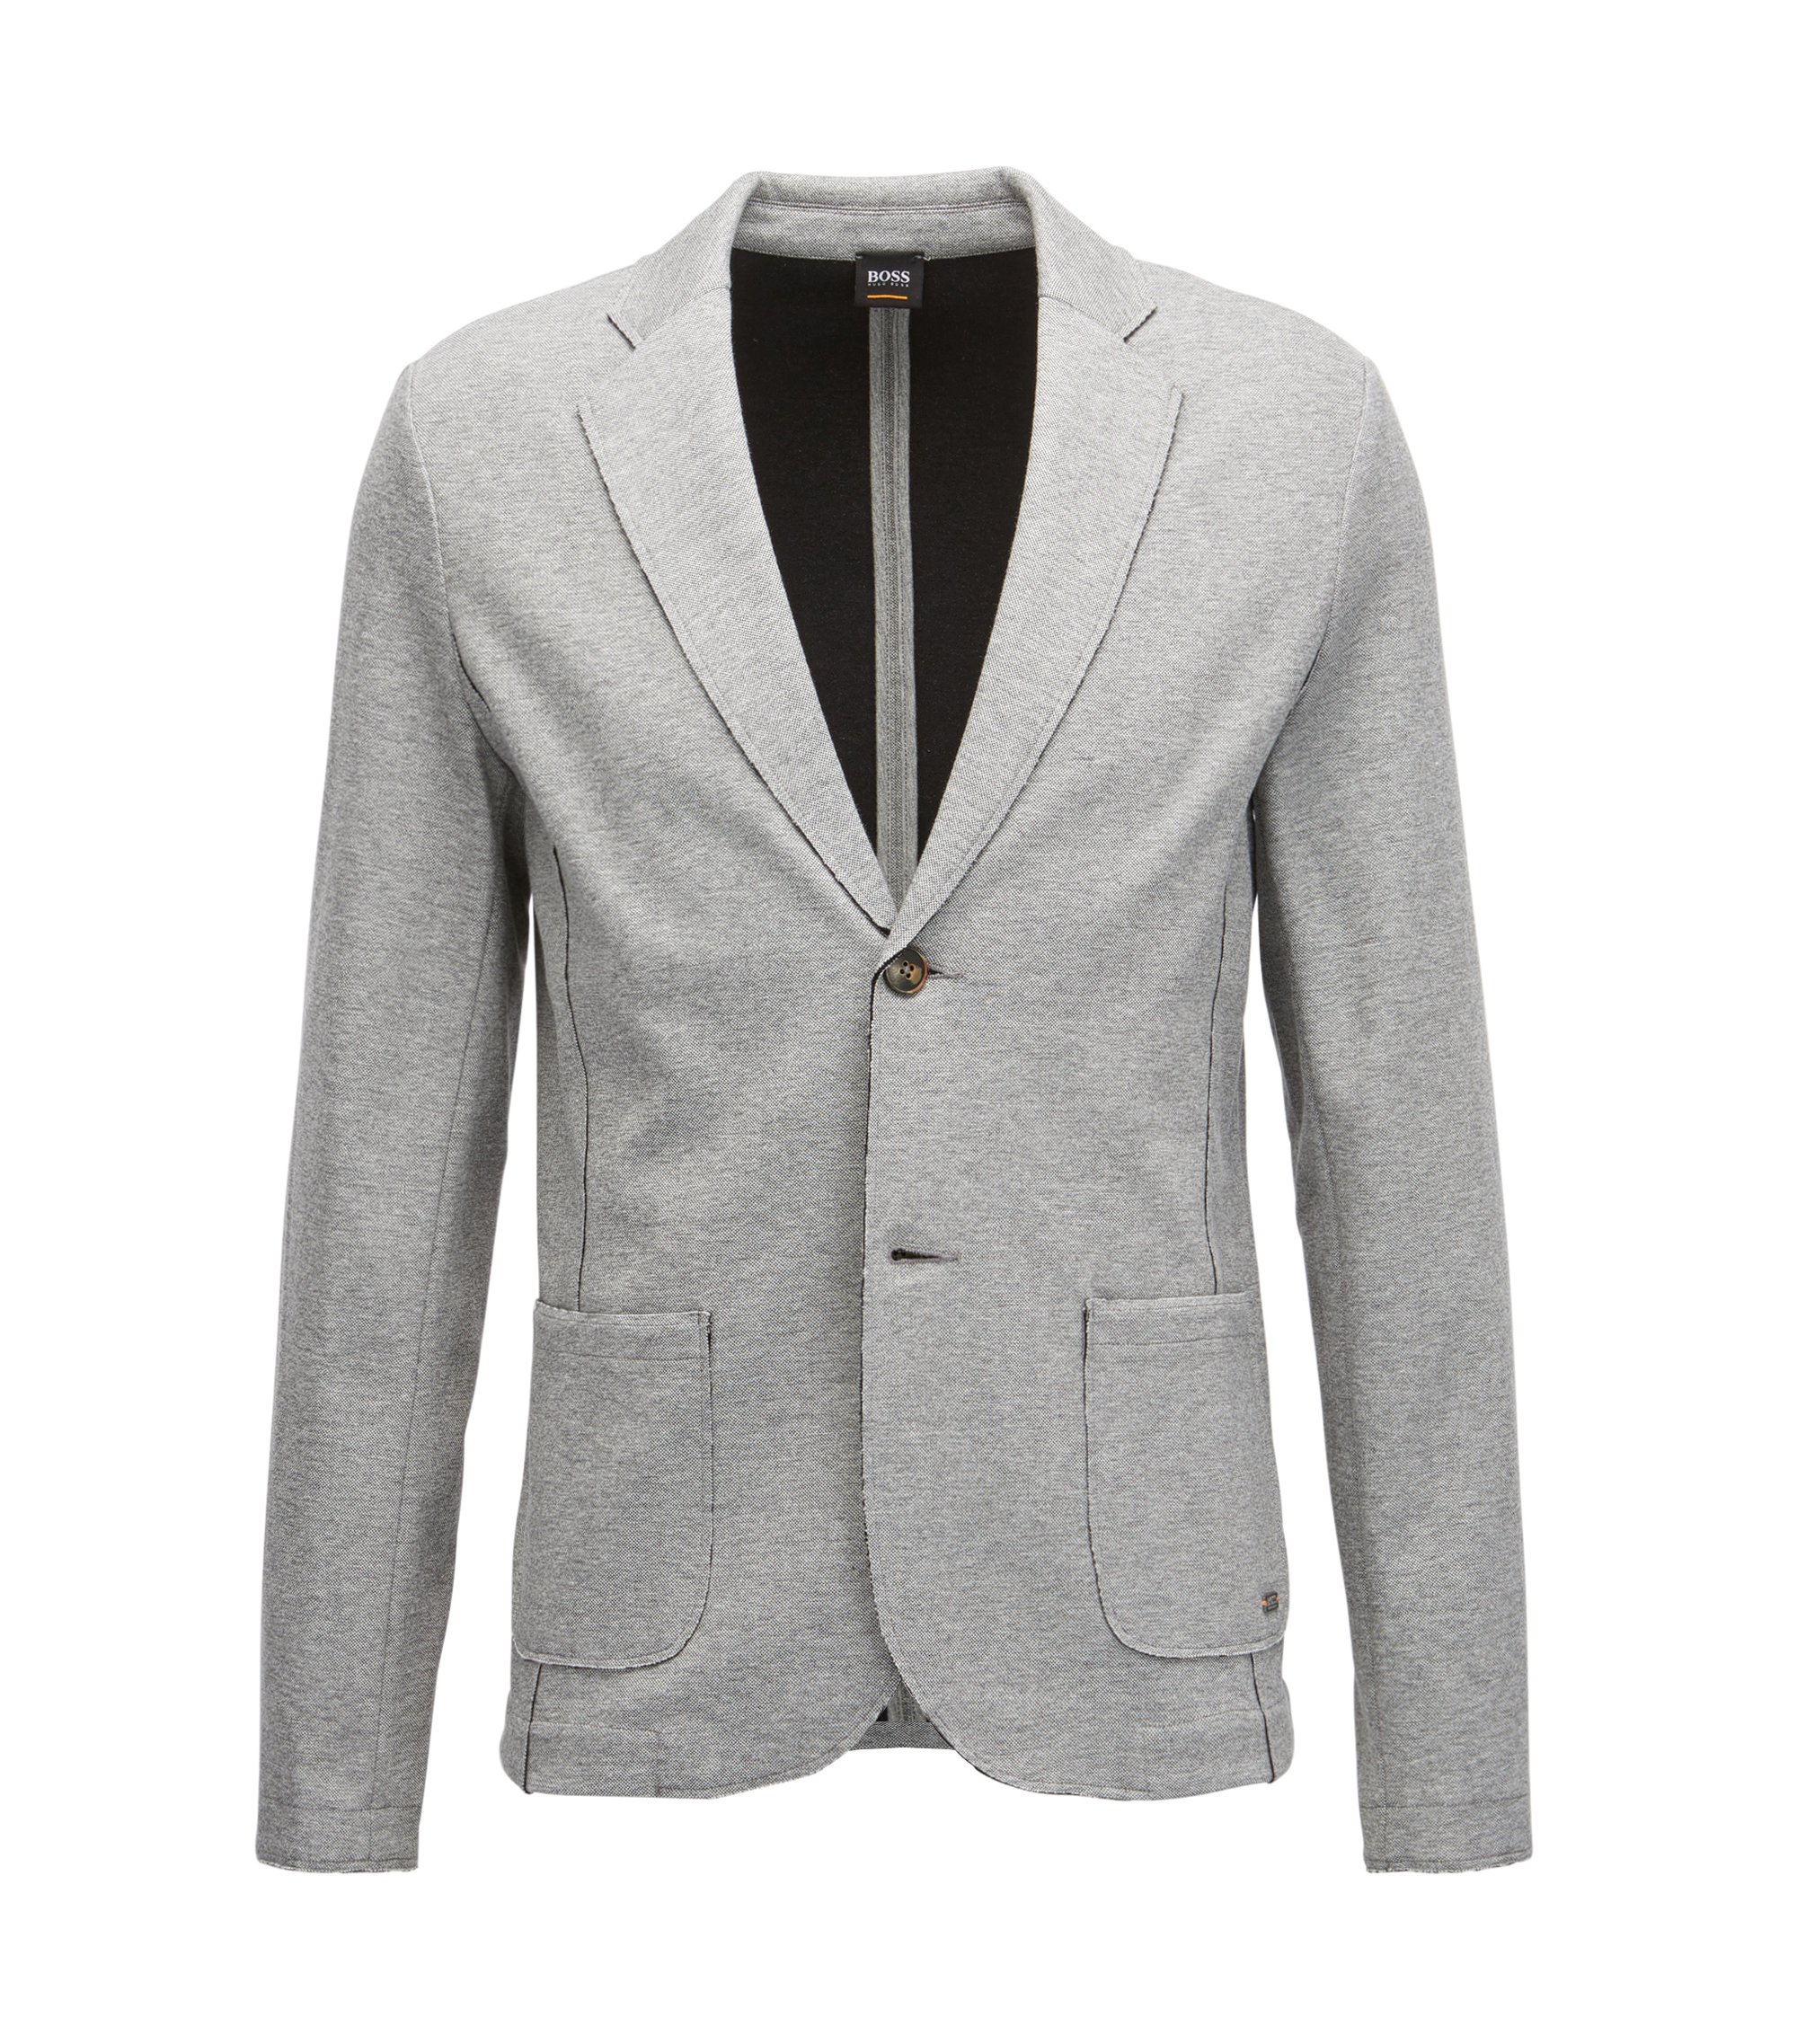 Veste Regular Fit en jersey double couche, à bords francs, Gris chiné